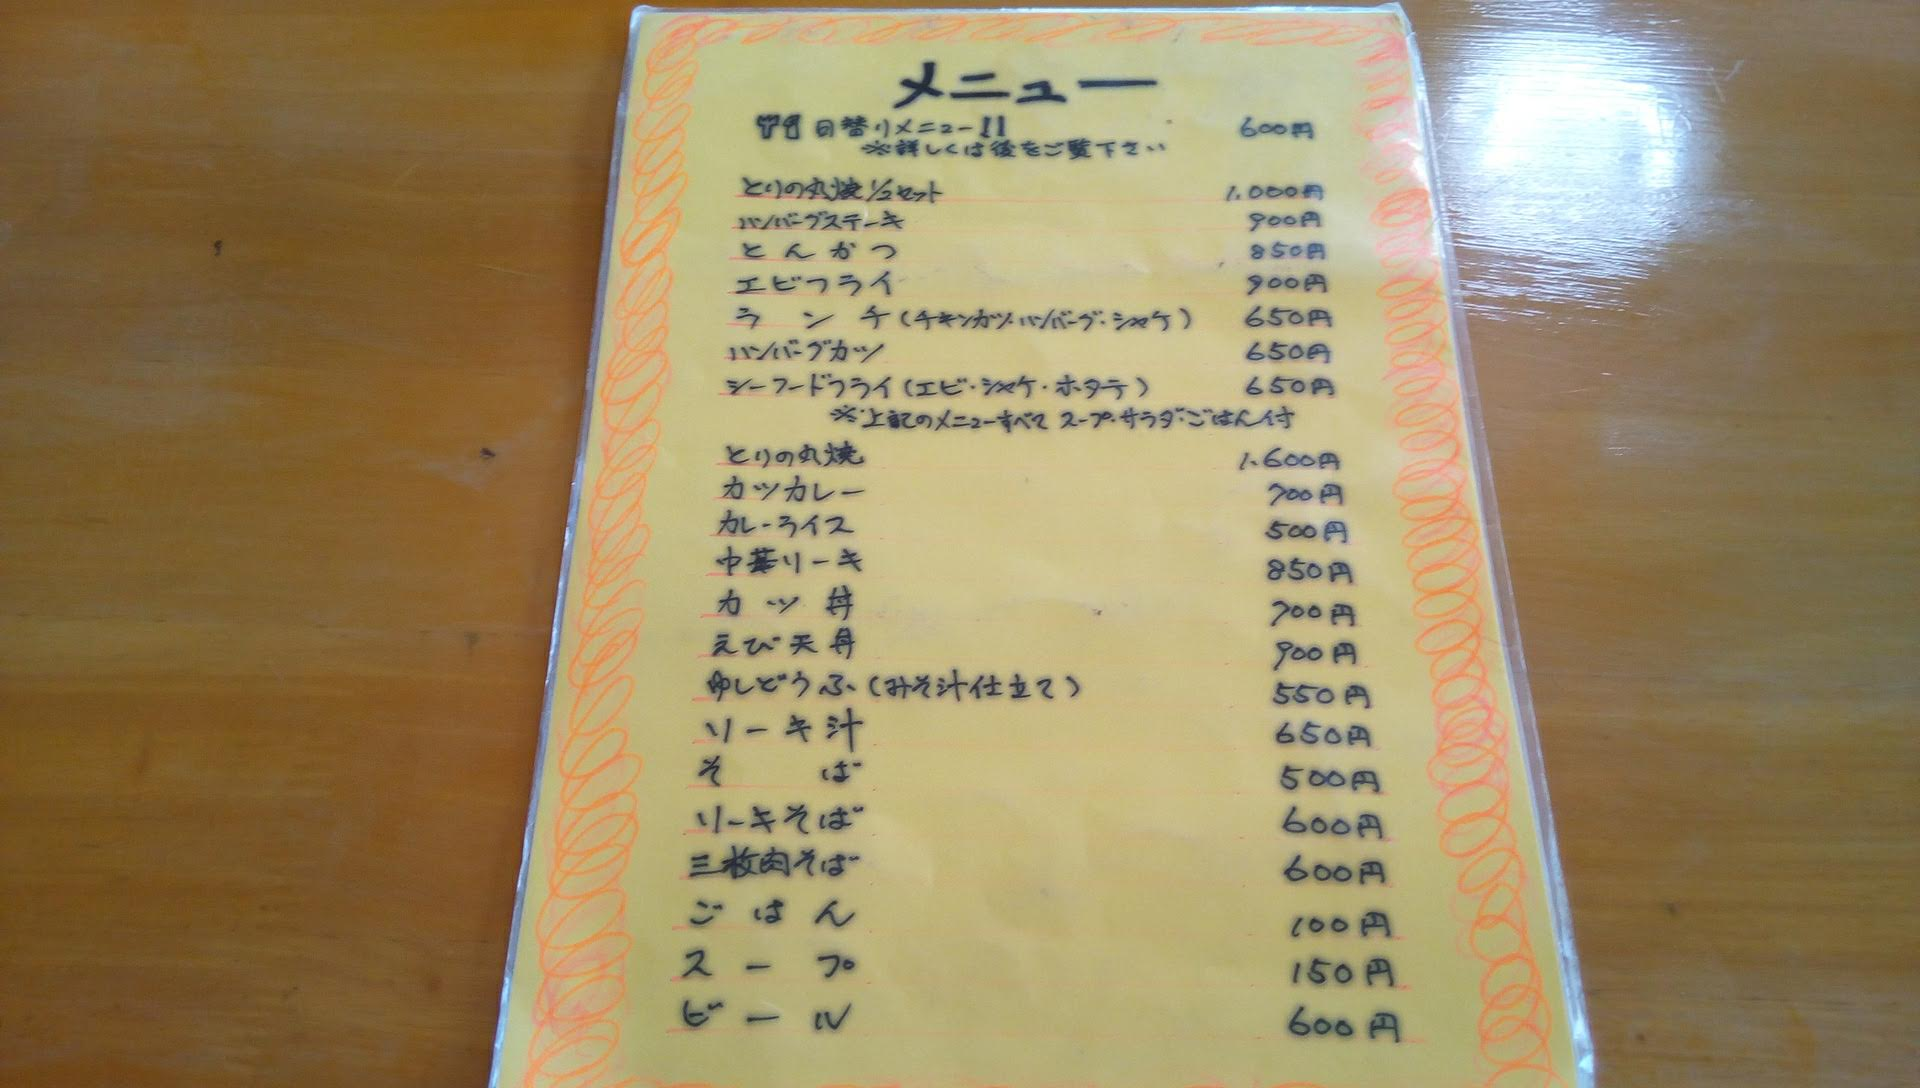 The menu of restaurants Machida